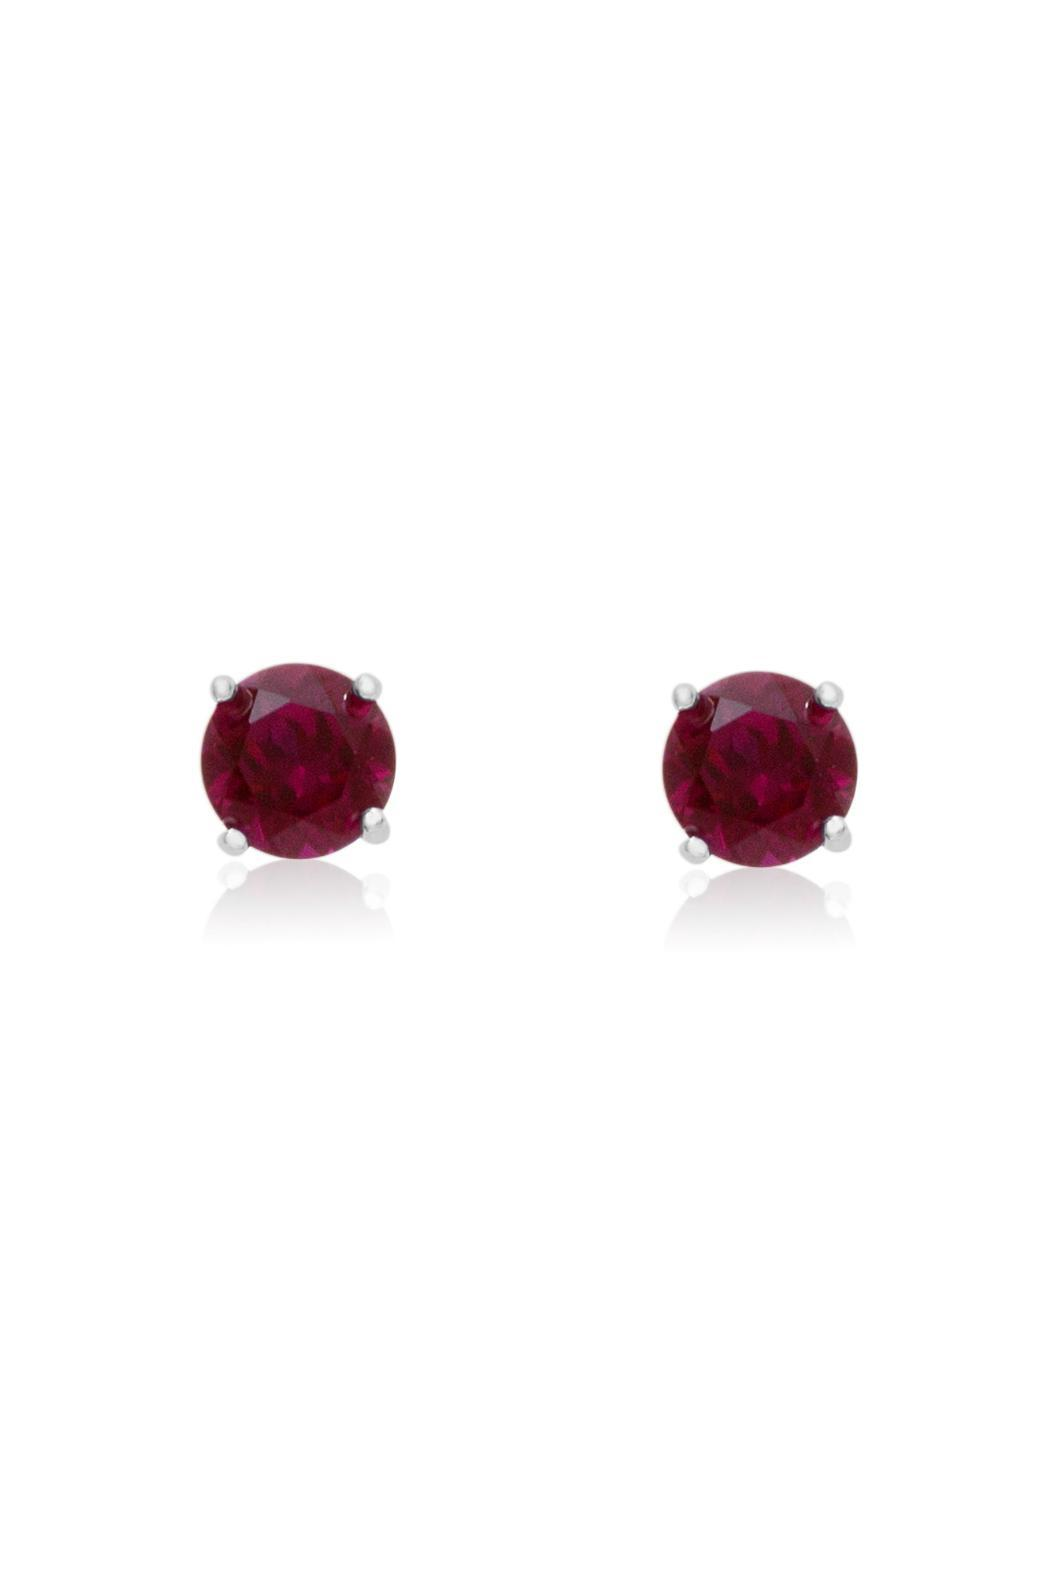 passiana ruby stud earrings from manhattan by 6th borough. Black Bedroom Furniture Sets. Home Design Ideas